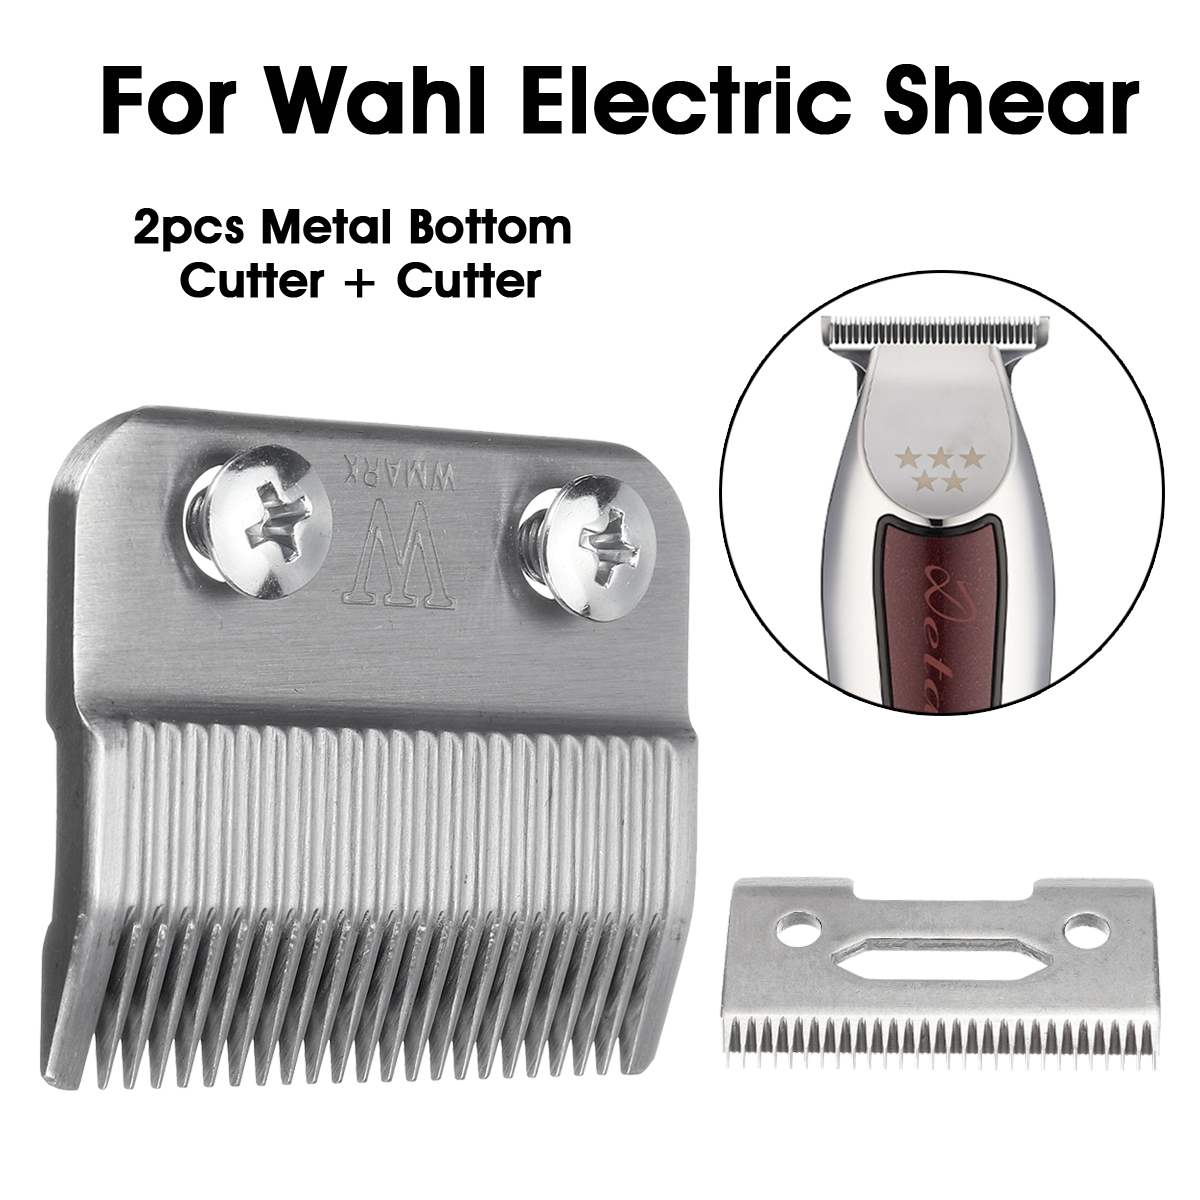 2pcs 2 Hole Sliver Clipper Blade Cutter Metal Bottom Cutter For Barber Home Use For Wahl Electric Shear Hair Clipper Trimmers